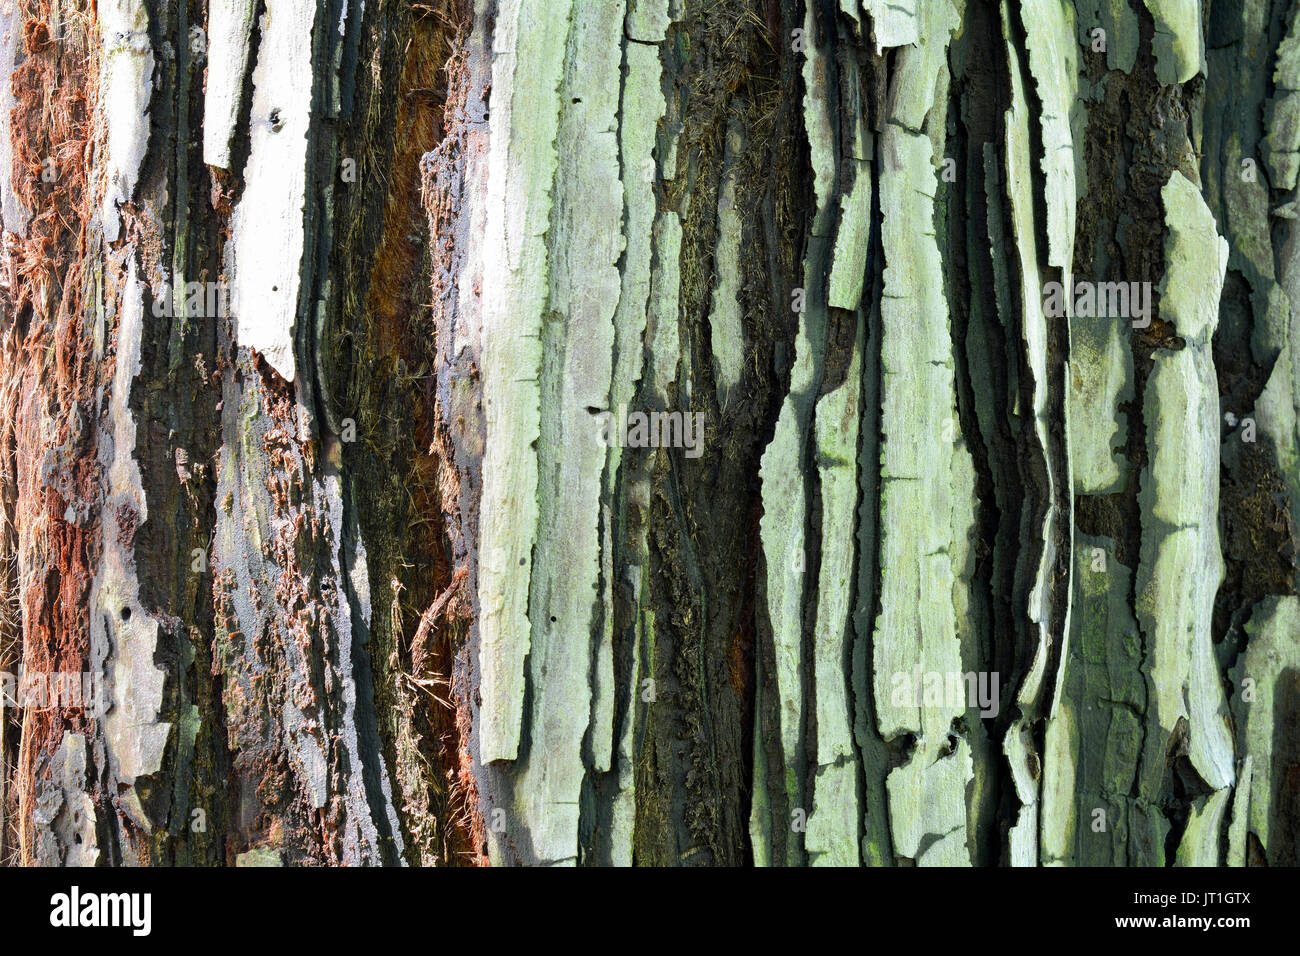 The bark of a young coastal redwood, Sequoia sempervirens, featuring ...